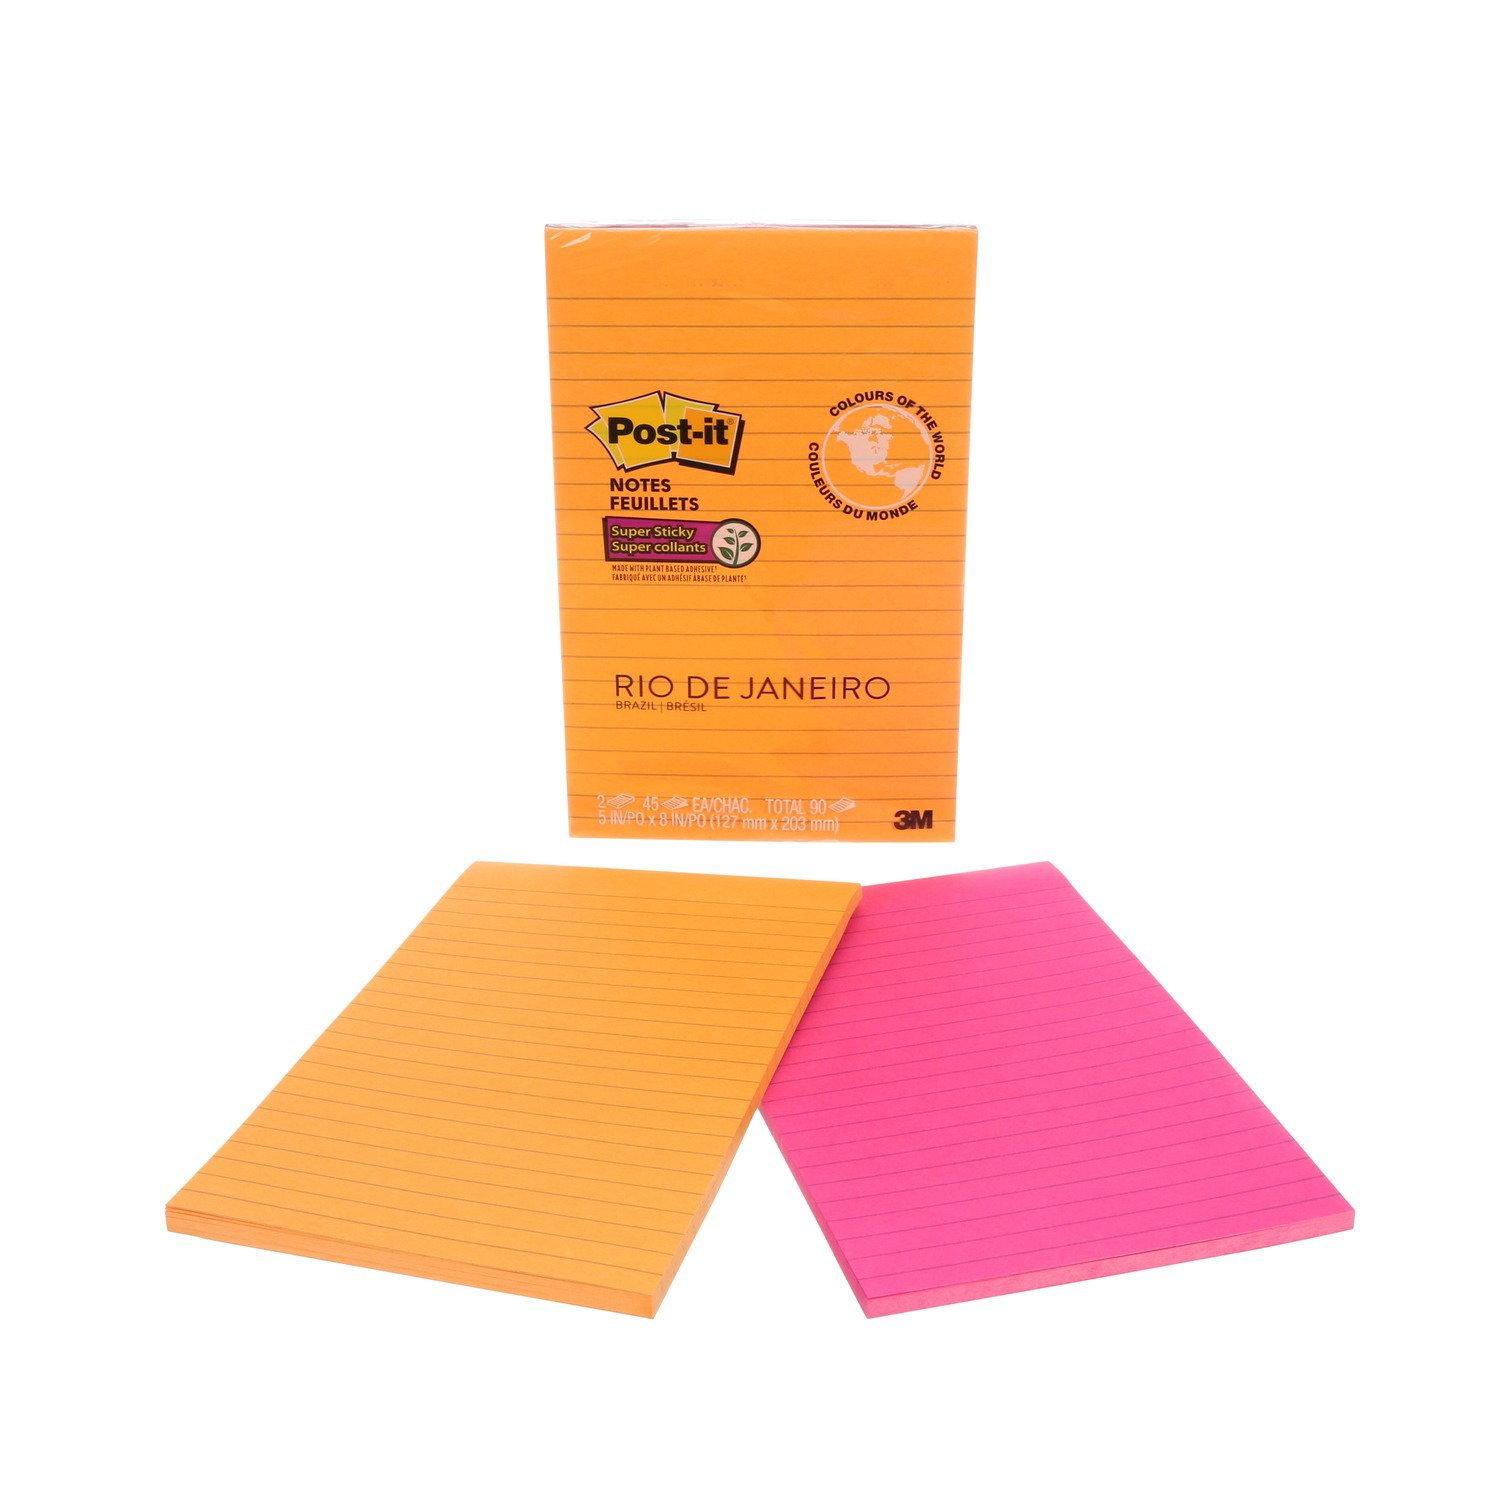 Post-it Super Sticky Notes, 5 x 8, Rio de Janeiro Colours, Lined, 2 Pads/Pack 5 x 8 3M Canada Company 5845-SS-C